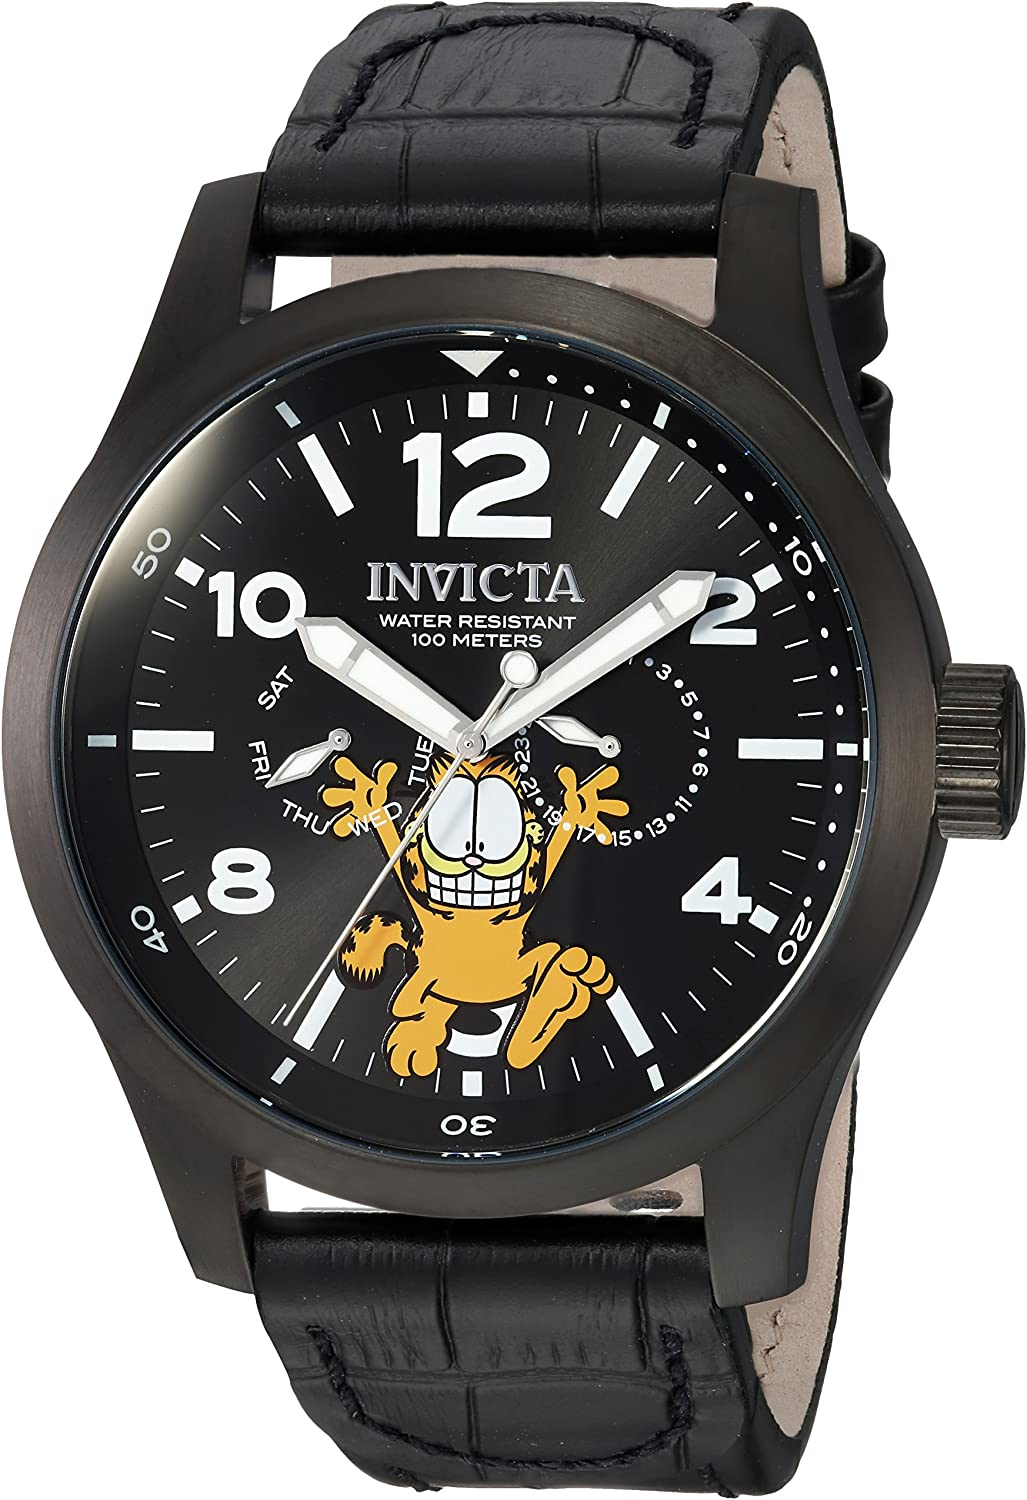 Invicta Men s Character Collection Stainless Steel Quartz Watch with Leather Calfskin Strap, Black, 24 Model 24884